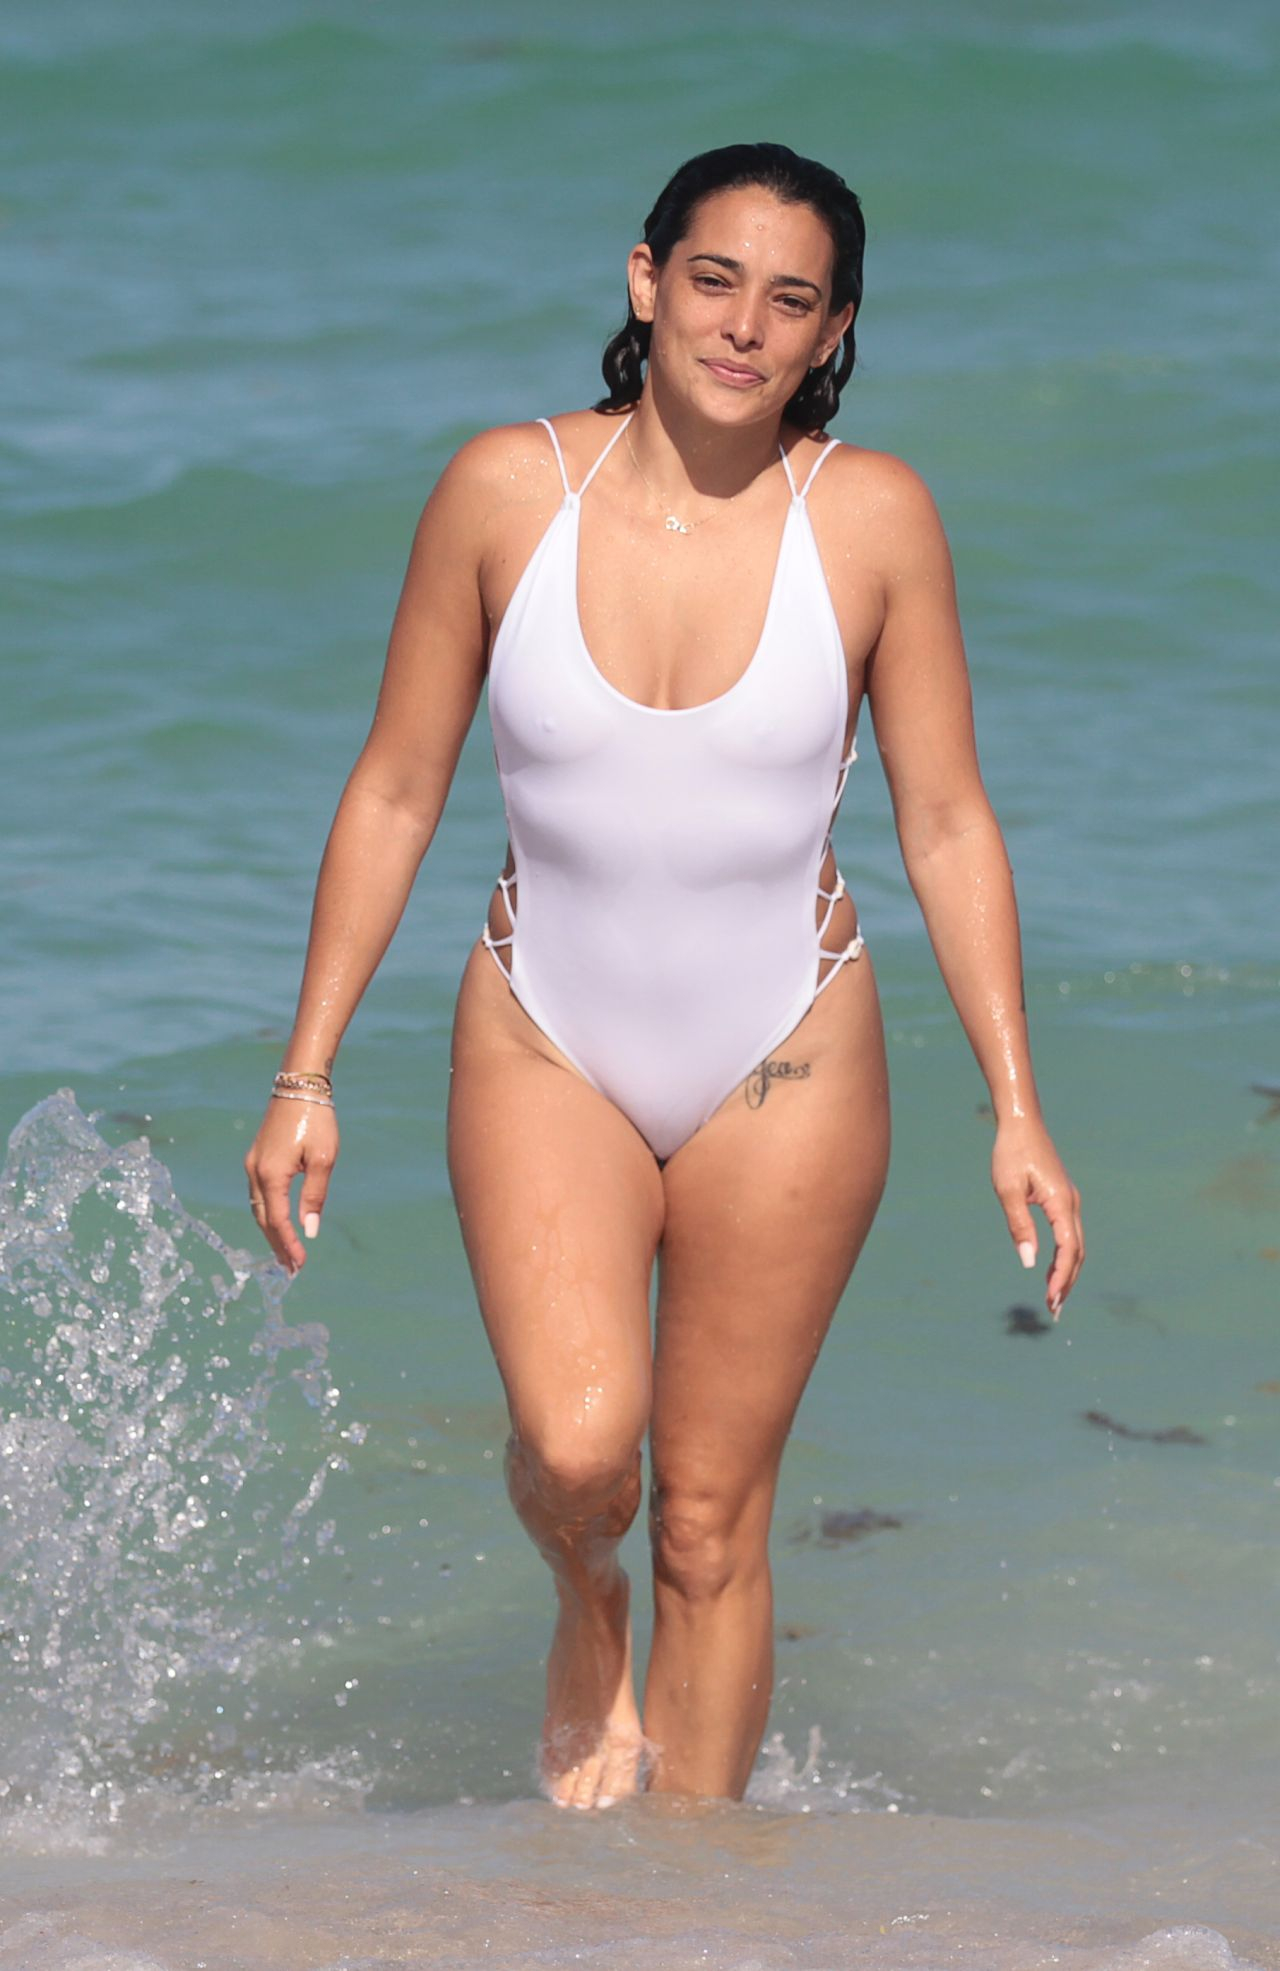 Natalie martinez shows off her swimsuit body in miami beach